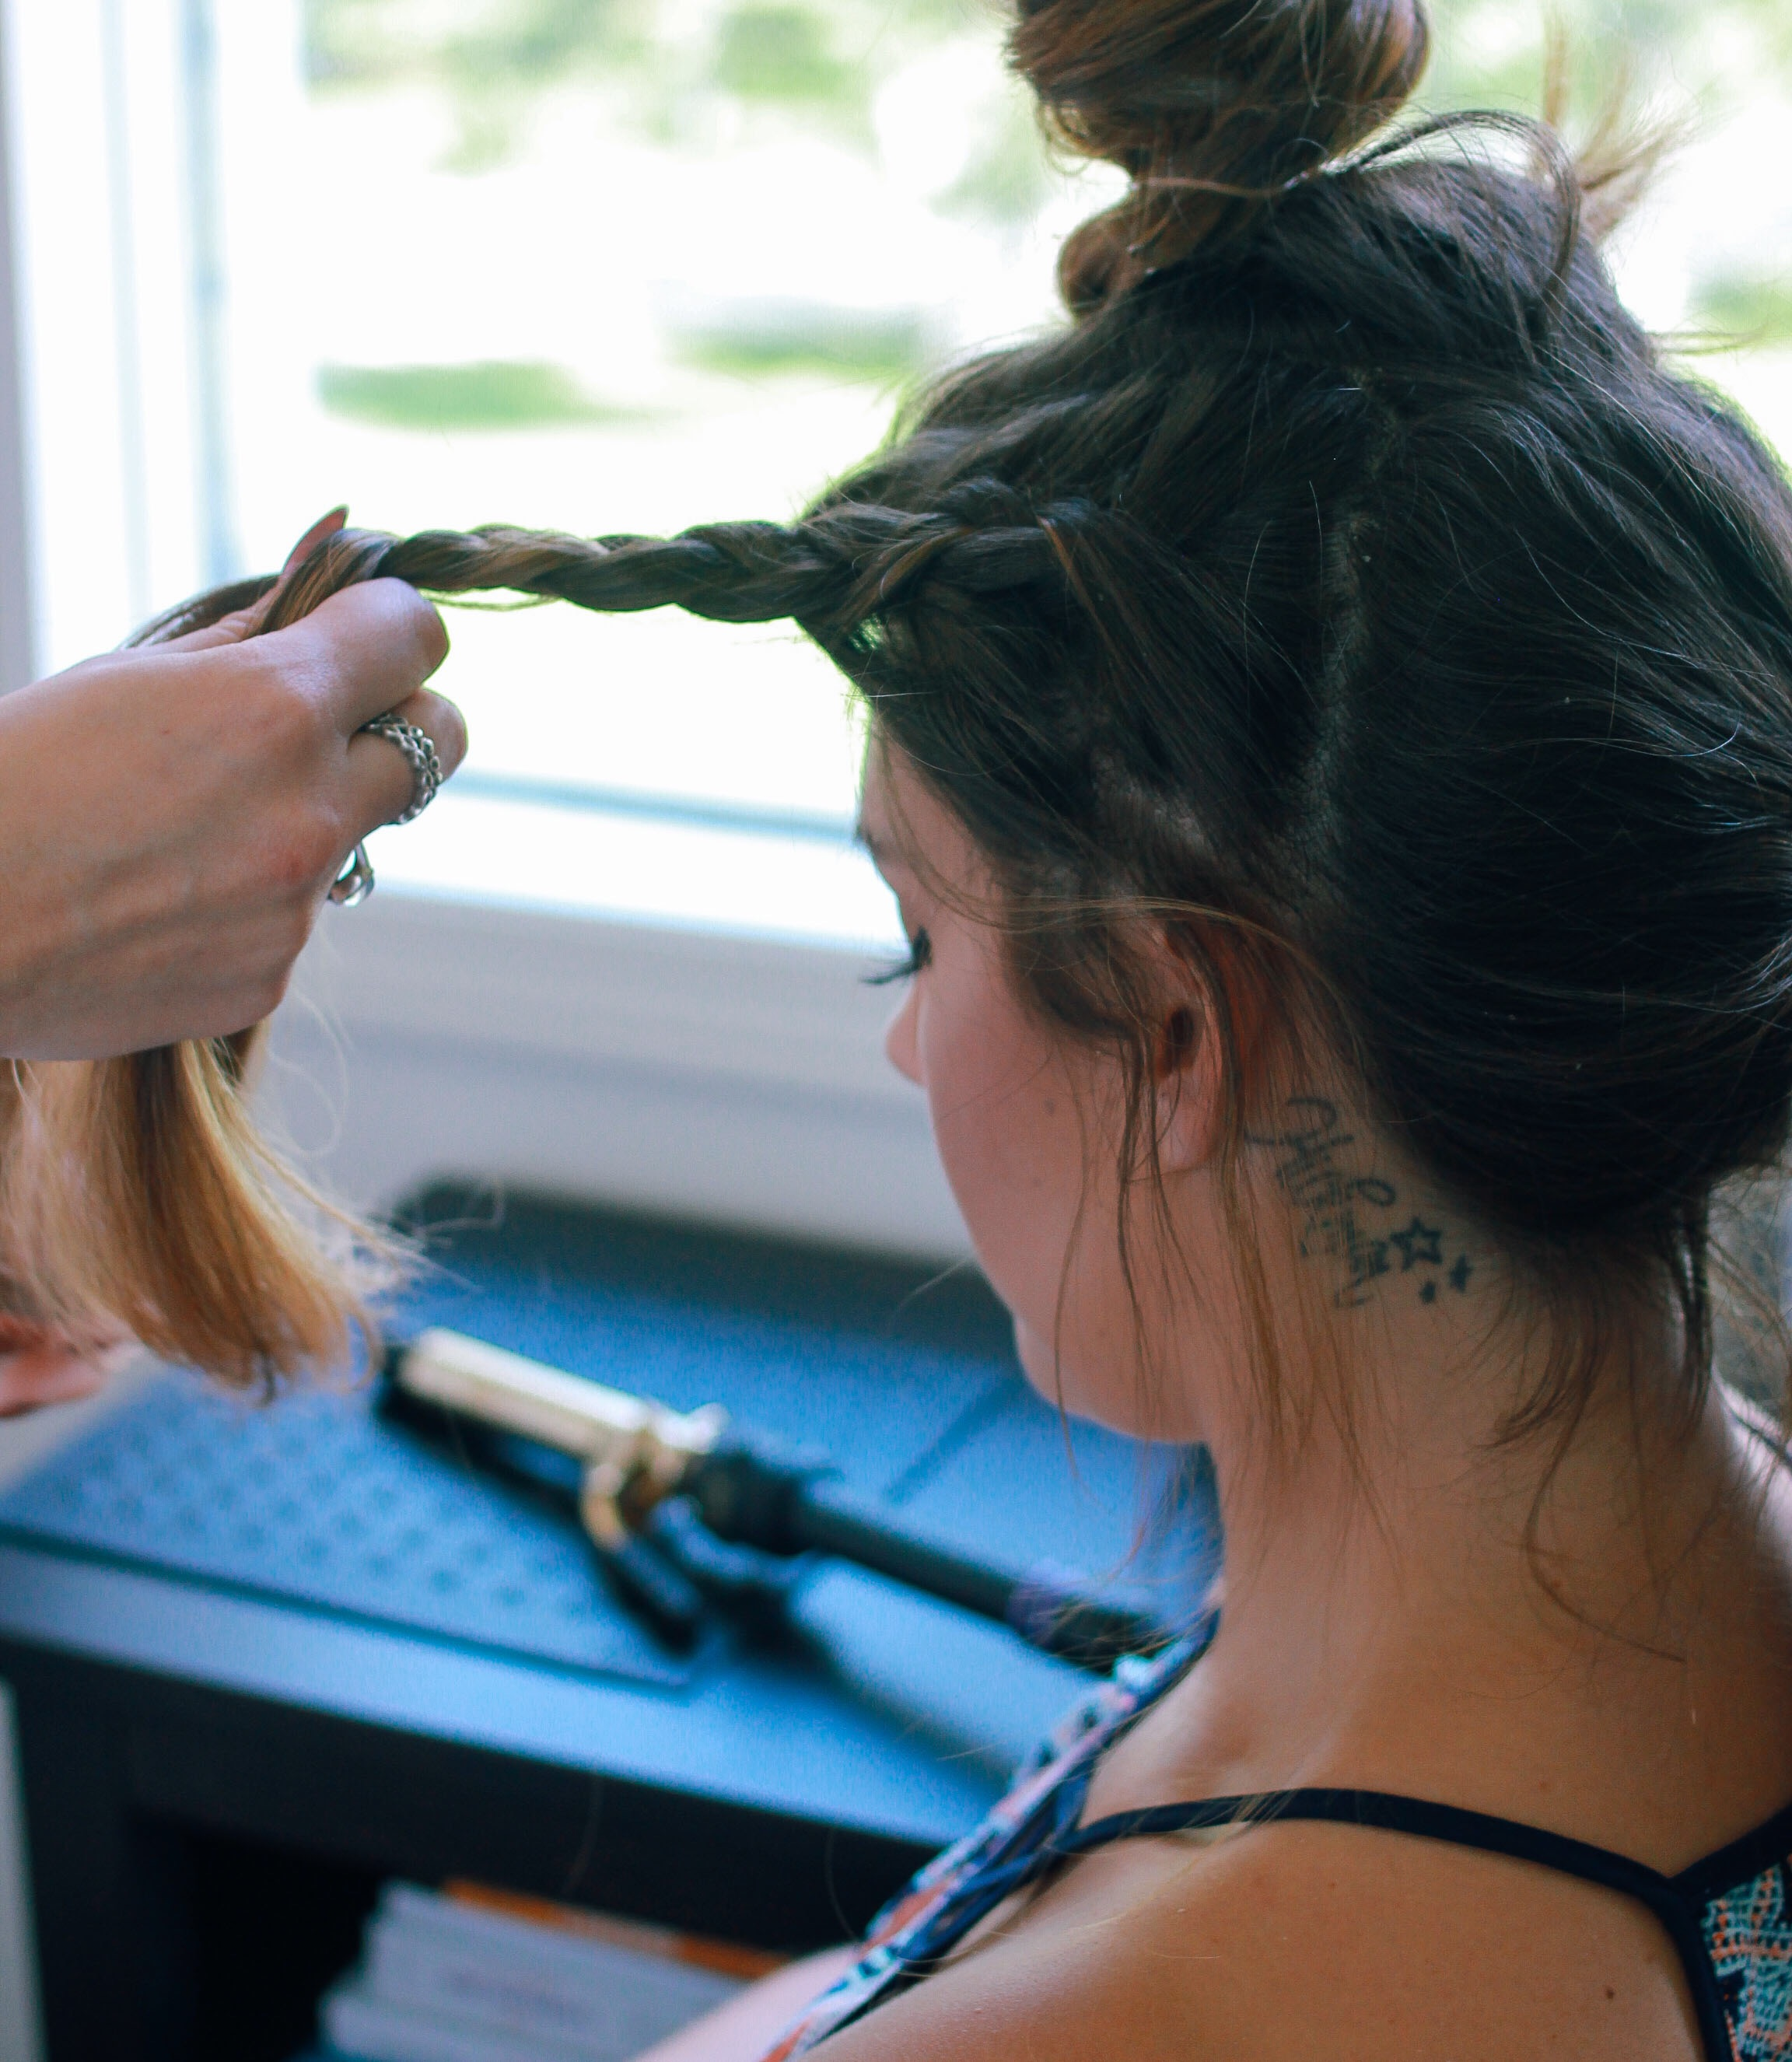 Use three strand technique. Braid in the direction you want to go. Finish braid and secure with hair tie.